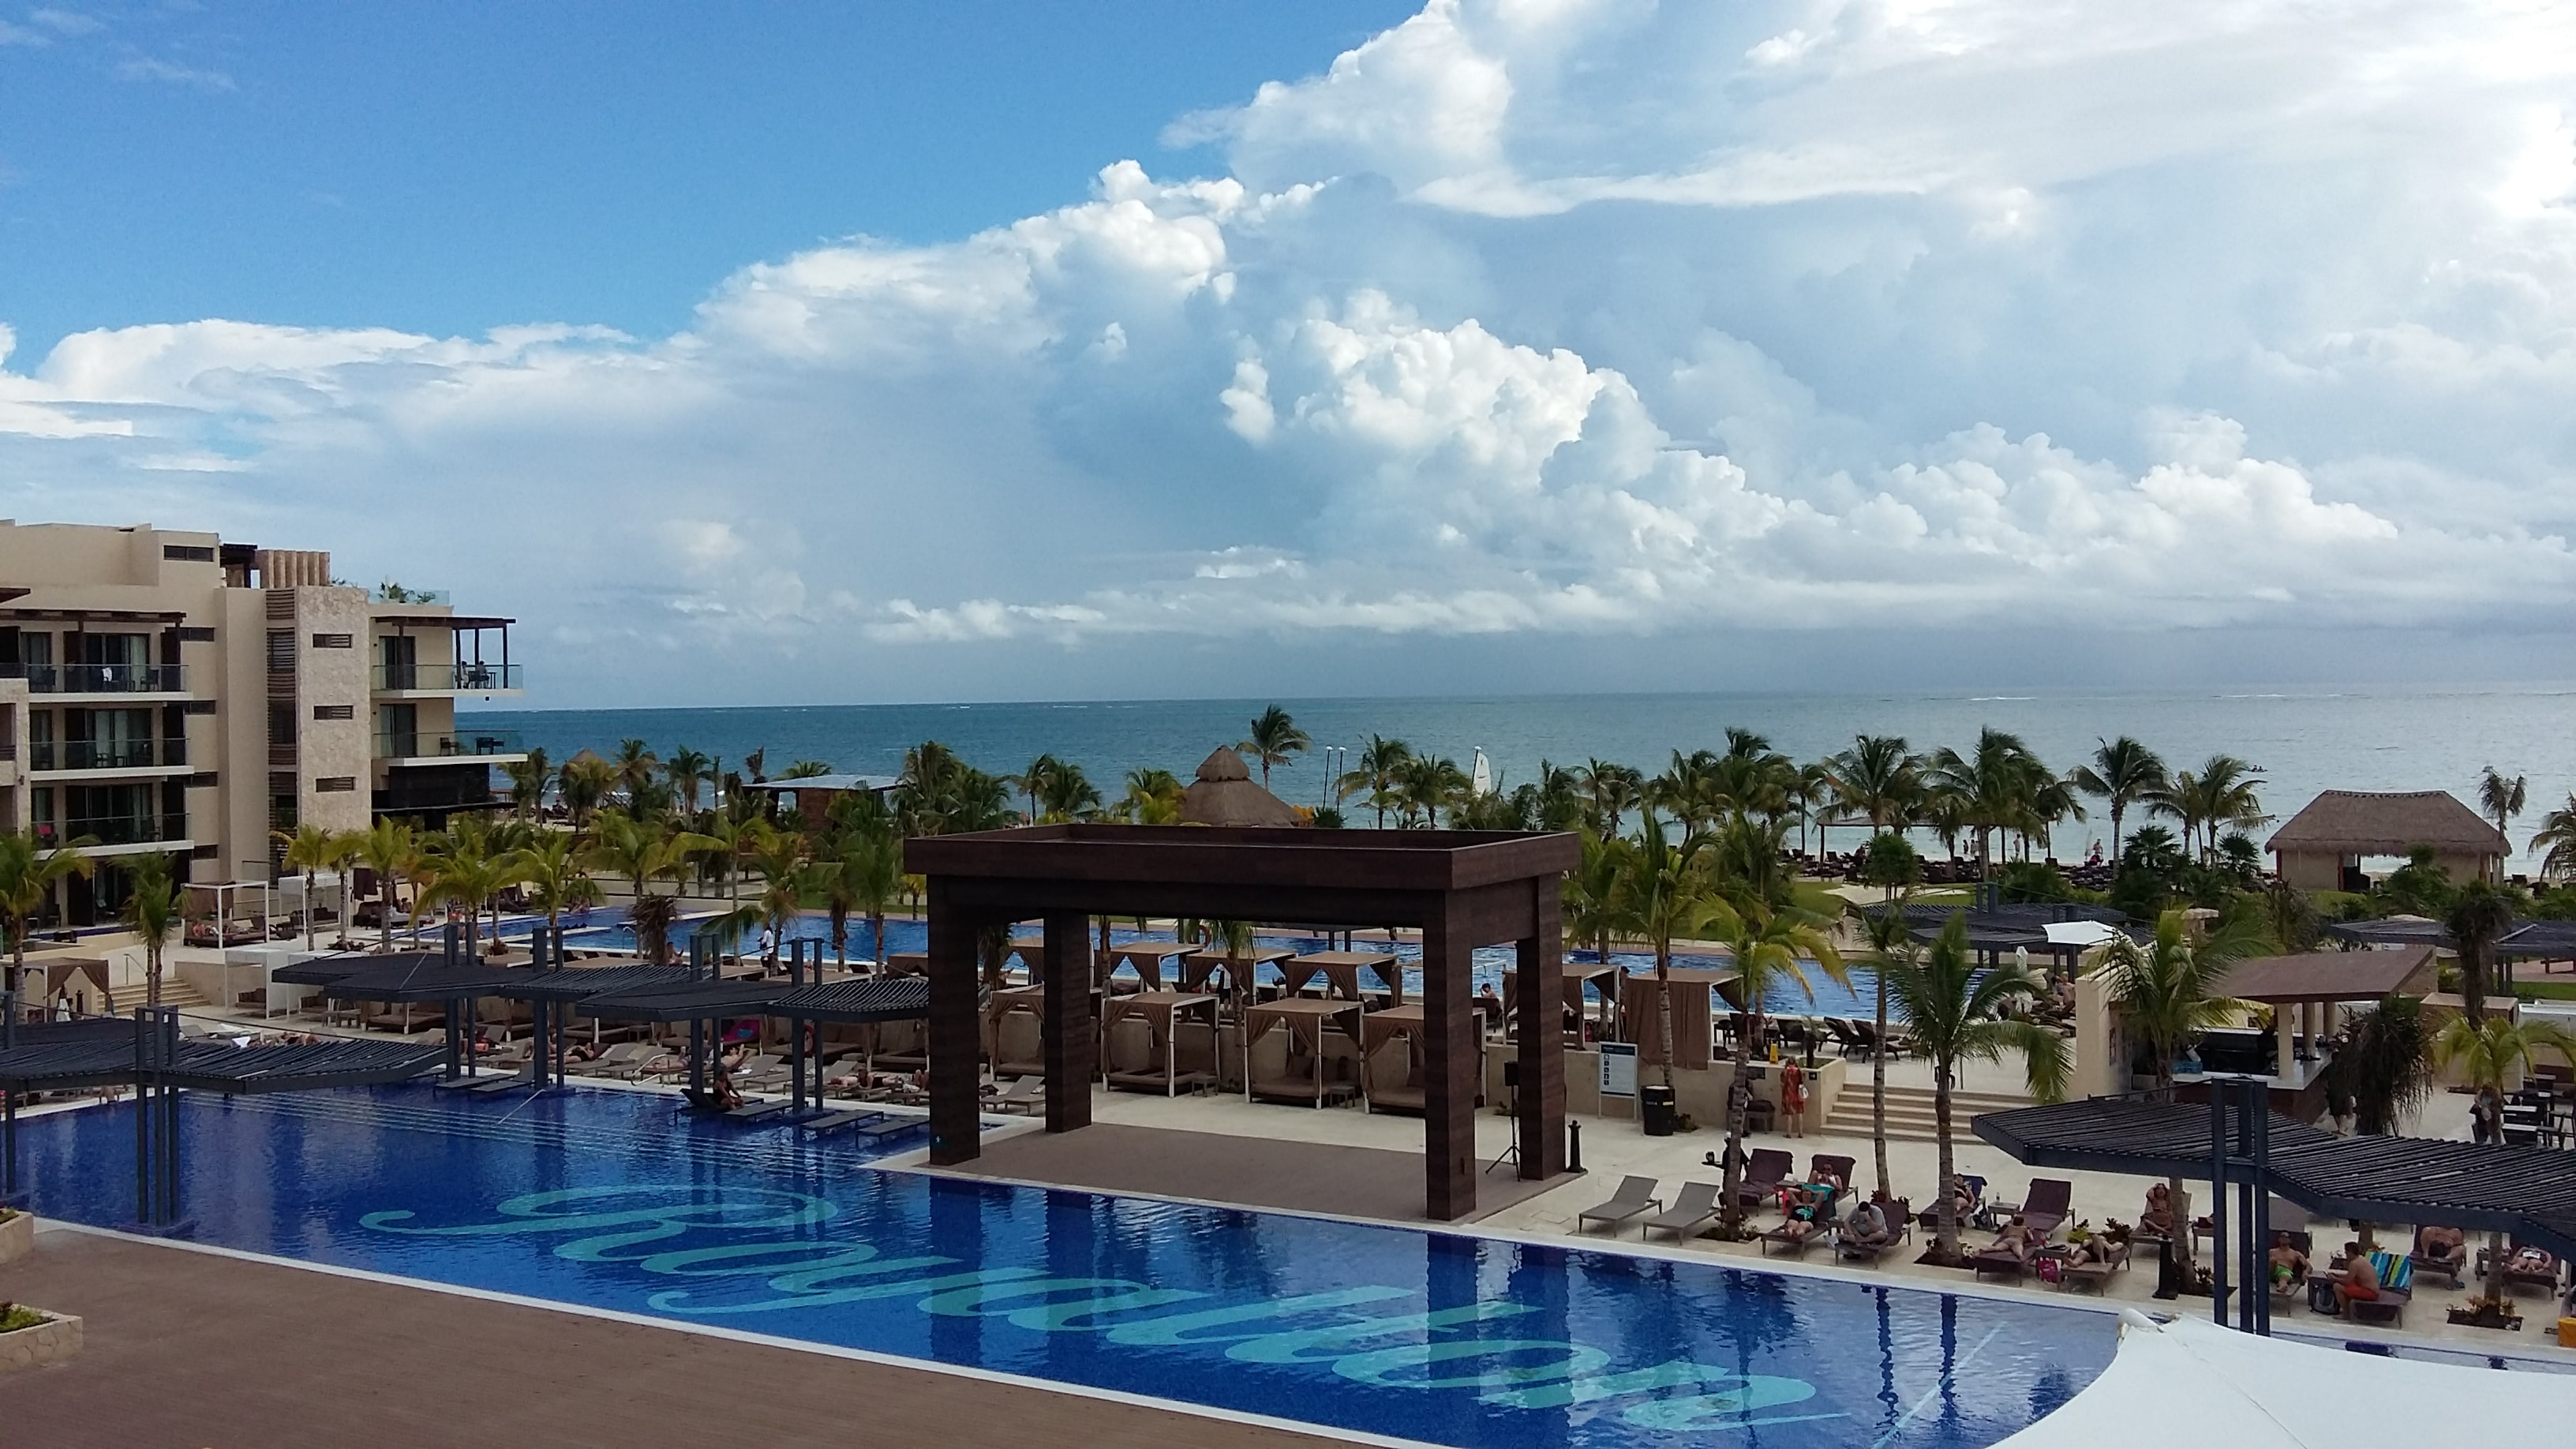 Royalton Riviera Cancun aerial view